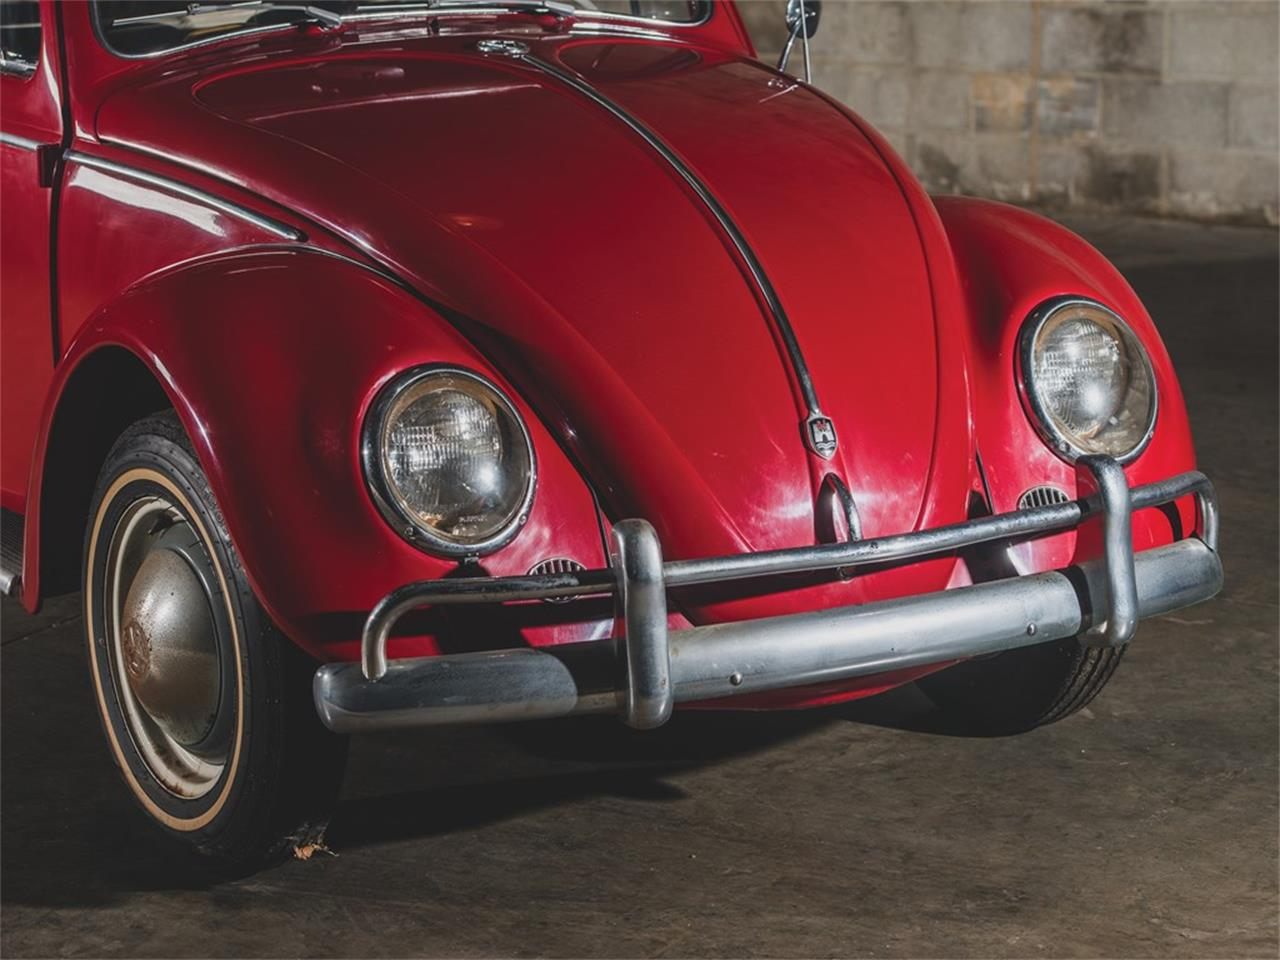 Large Picture of Classic 1962 Volkswagen Beetle Deluxe 'Sunroof' Sedan located in Missouri Auction Vehicle - PMN5